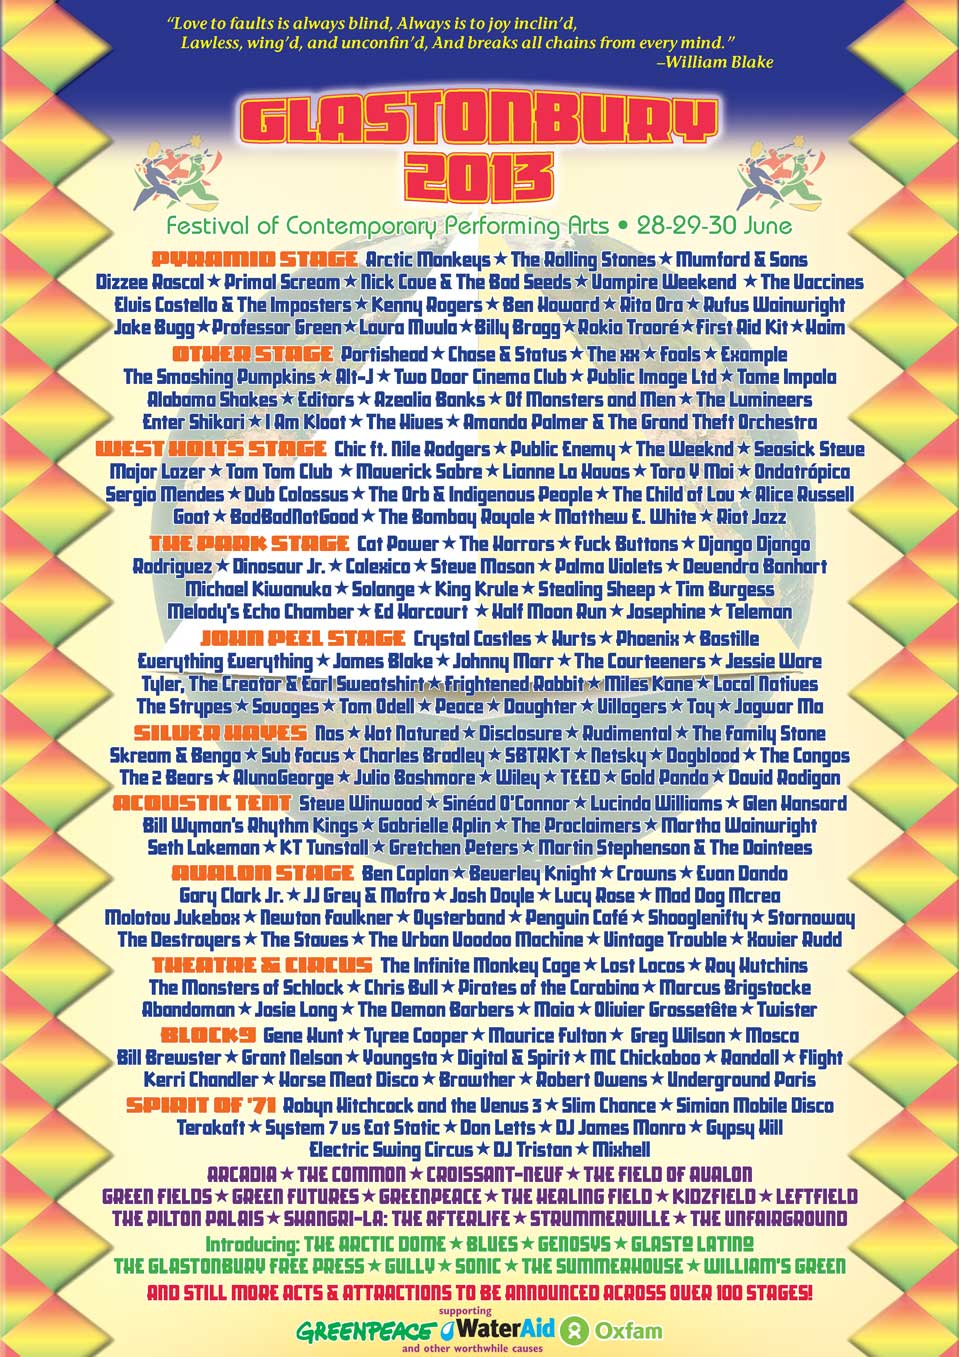 Glastonbury Festival 2013 Poster showing list of groups performing